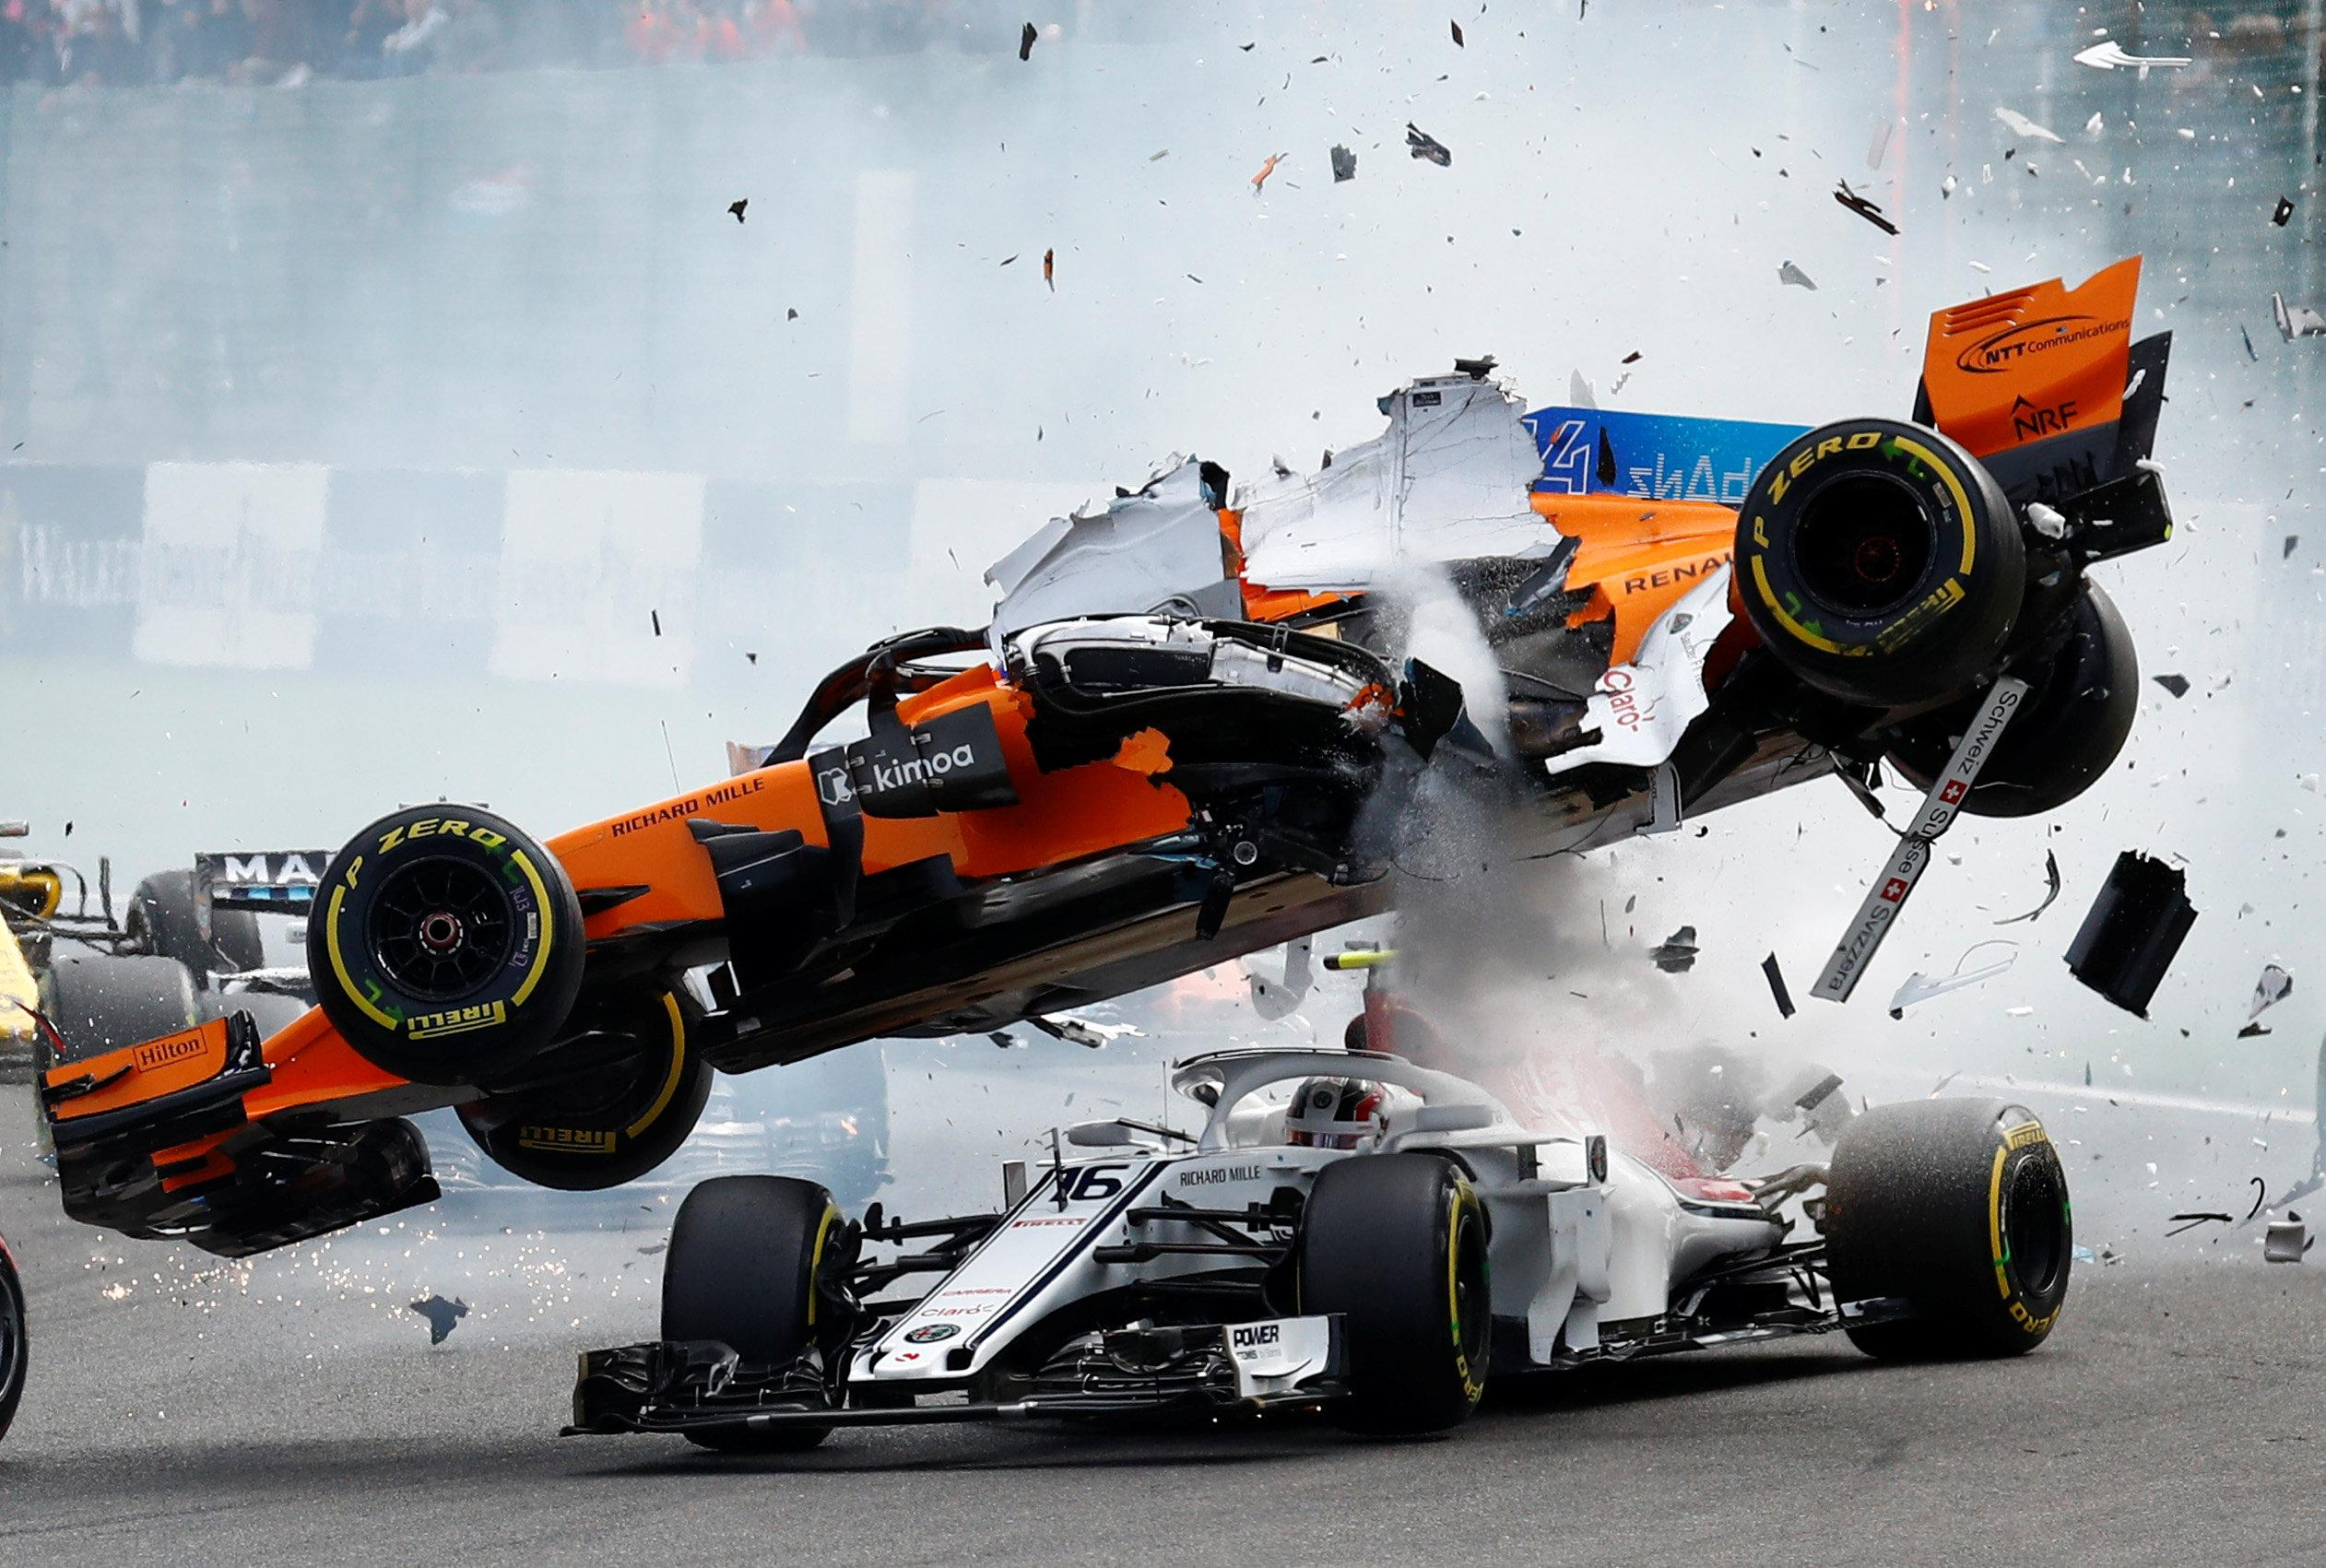 Fernando Alonso F1 Grand Prix Belgian Grand Prix Crash Fernando Alonso Launched Into The Air In